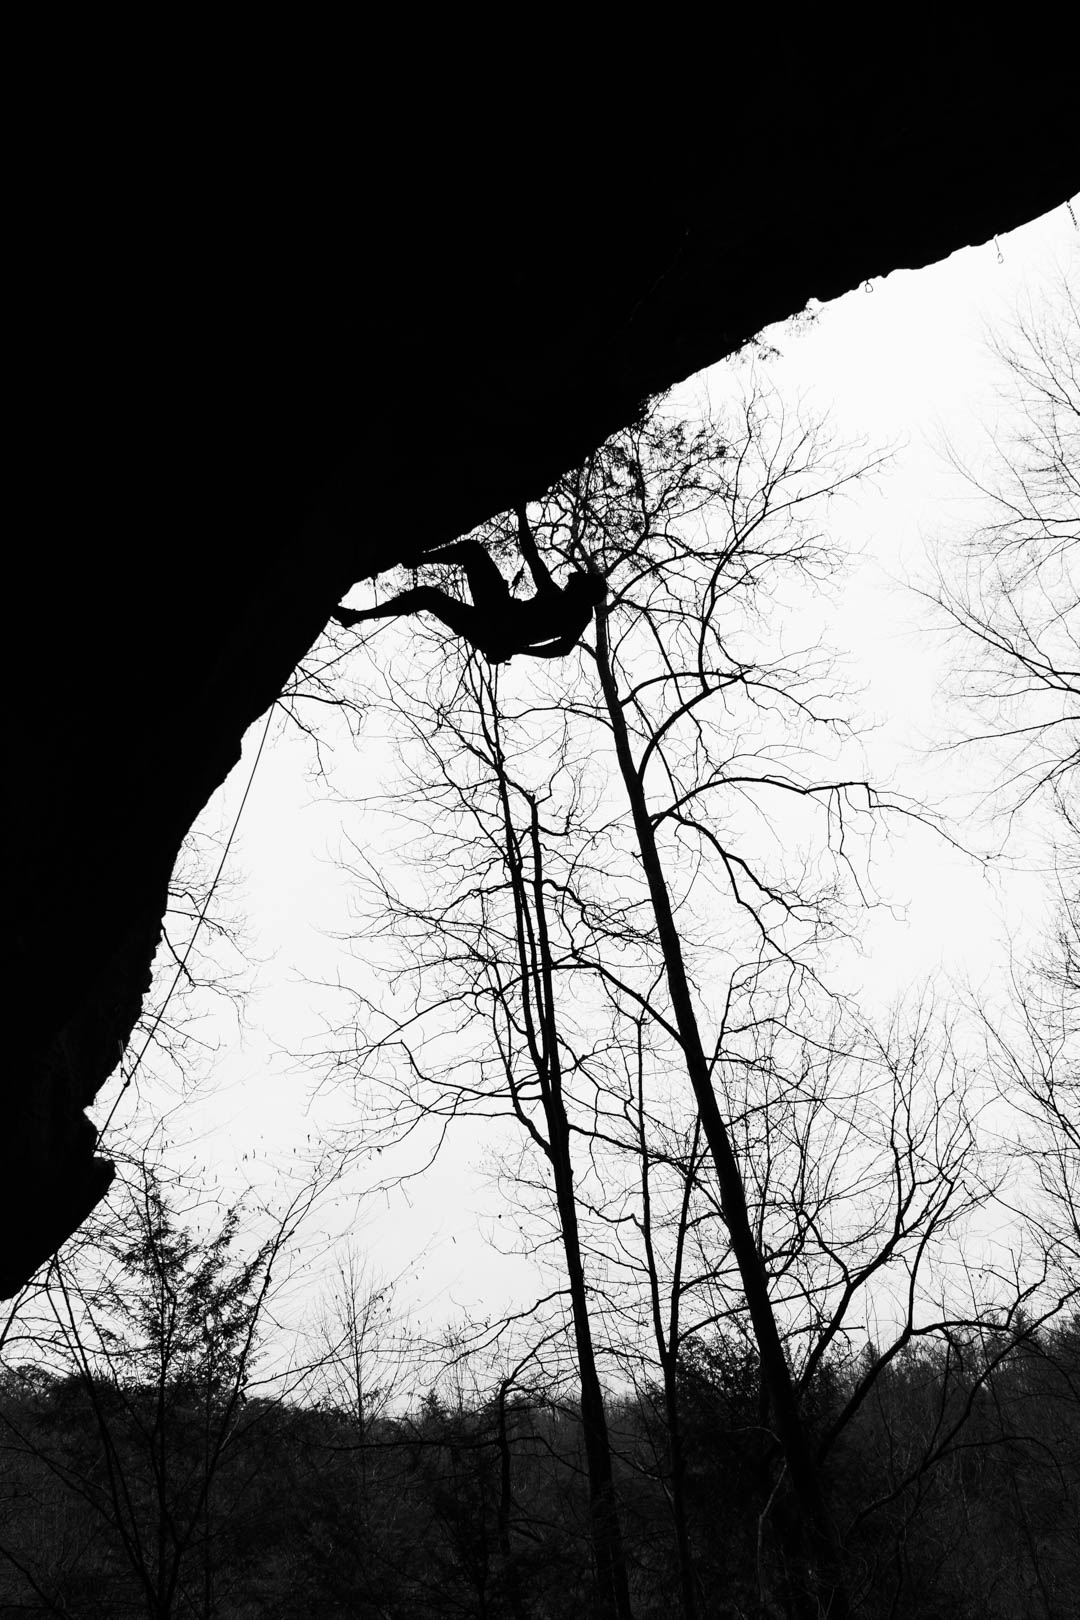 A shot of me on Singularity 5.12c. Taken by Brianna Wilson